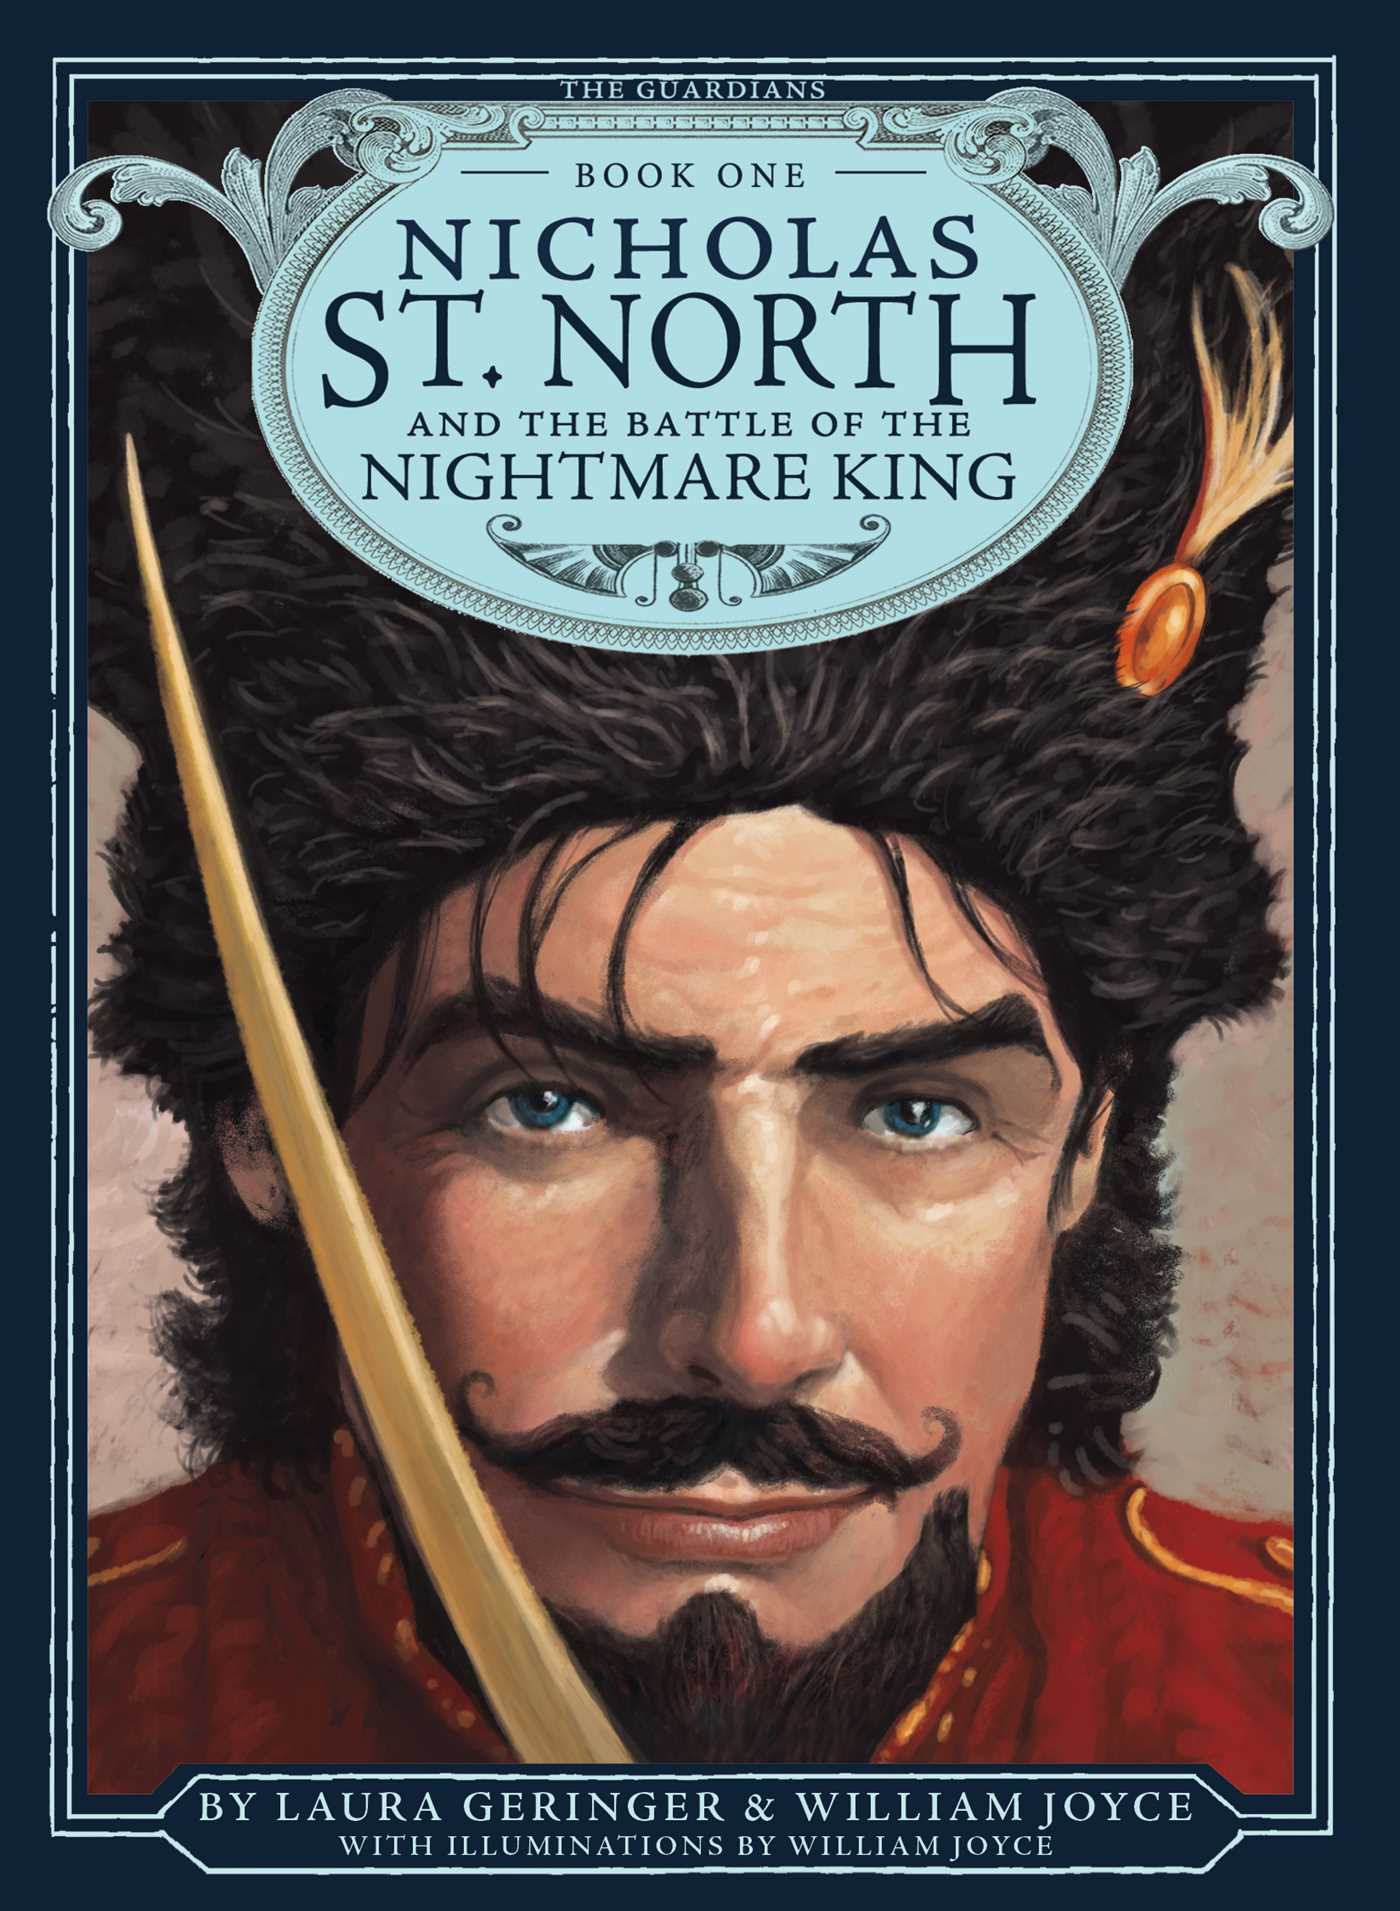 Nicholas-st-north-and-the-battle-of-the-nightmare-9781442435759_hr